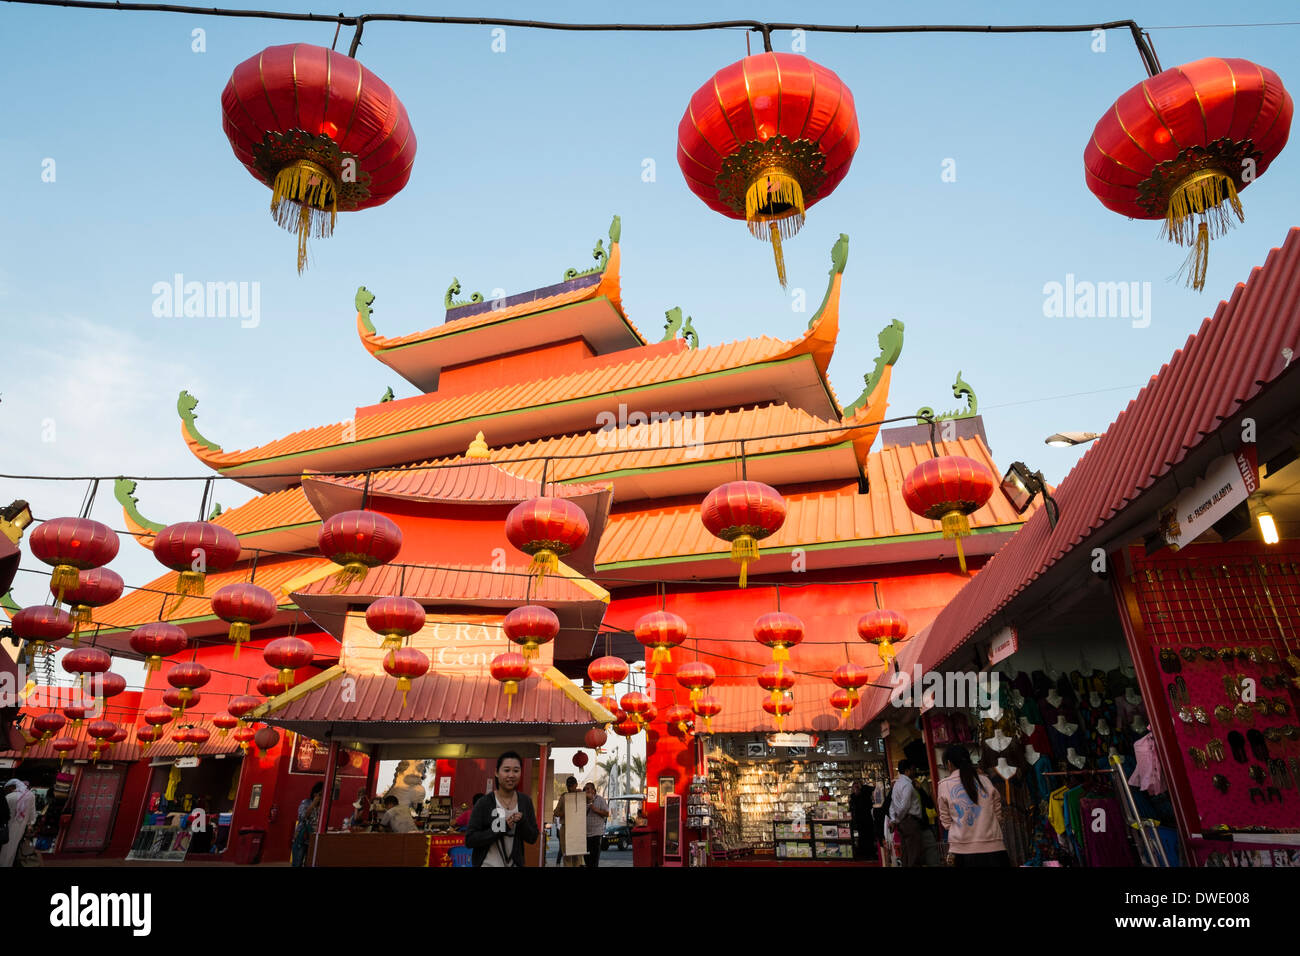 China Pavilion at Global Village tourist cultural attraction in Dubai United Arab Emirates - Stock Image